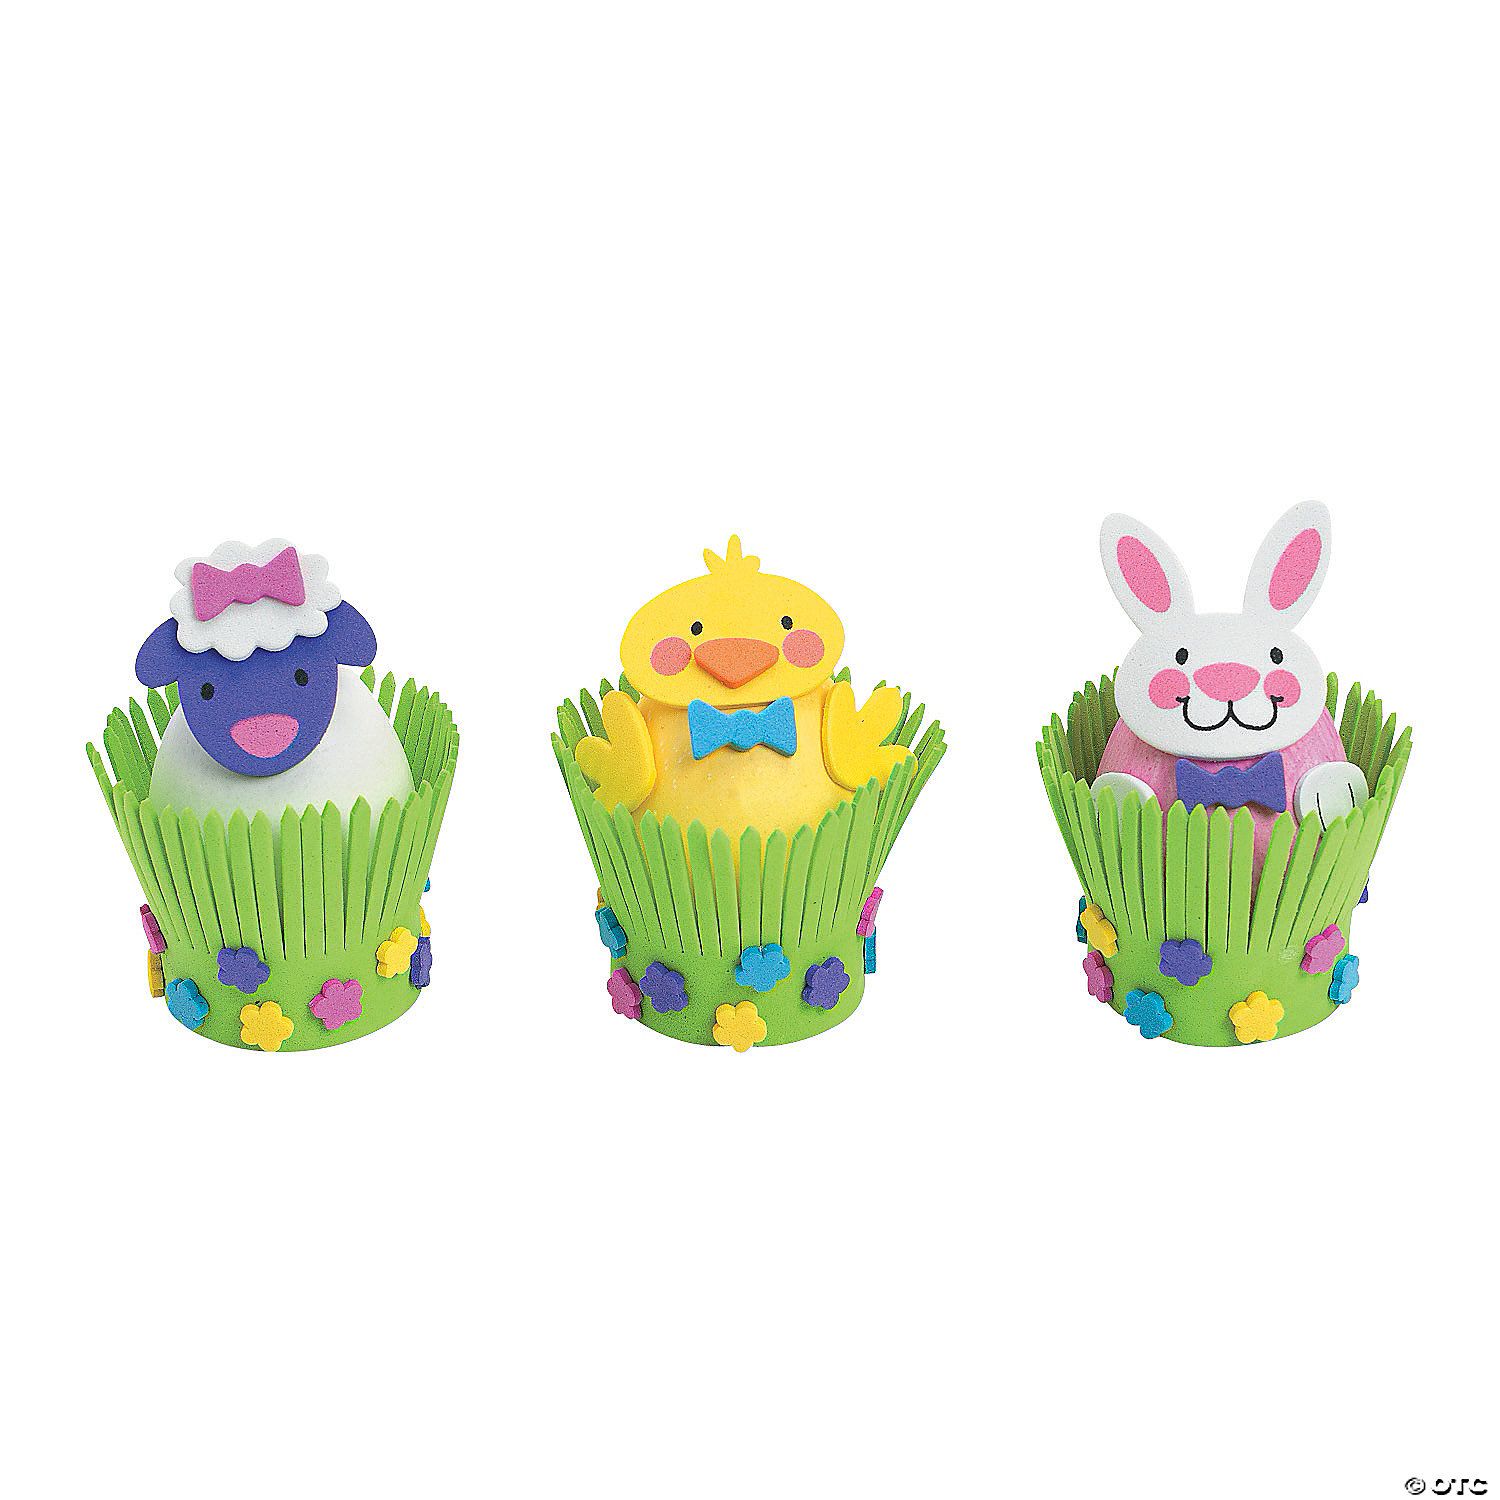 Oriental trading christian crafts - Easter Egg Decorations Craft Kit